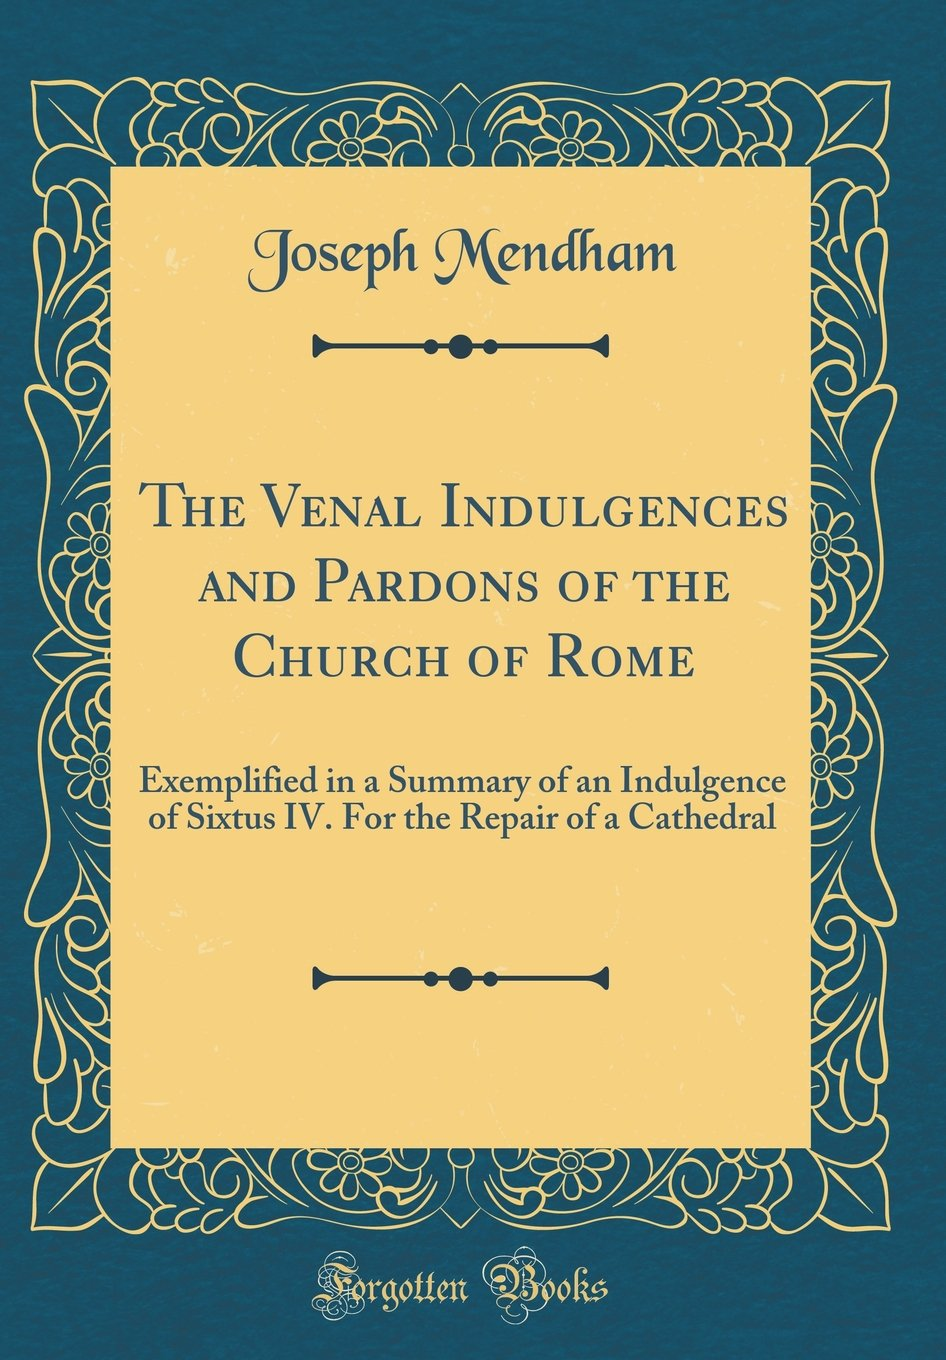 The Venal Indulgences and Pardons of the Church of Rome: Exemplified in a Summary of an Indulgence of Sixtus IV. for the Repair of a Cathedral (Classic Reprint) PDF